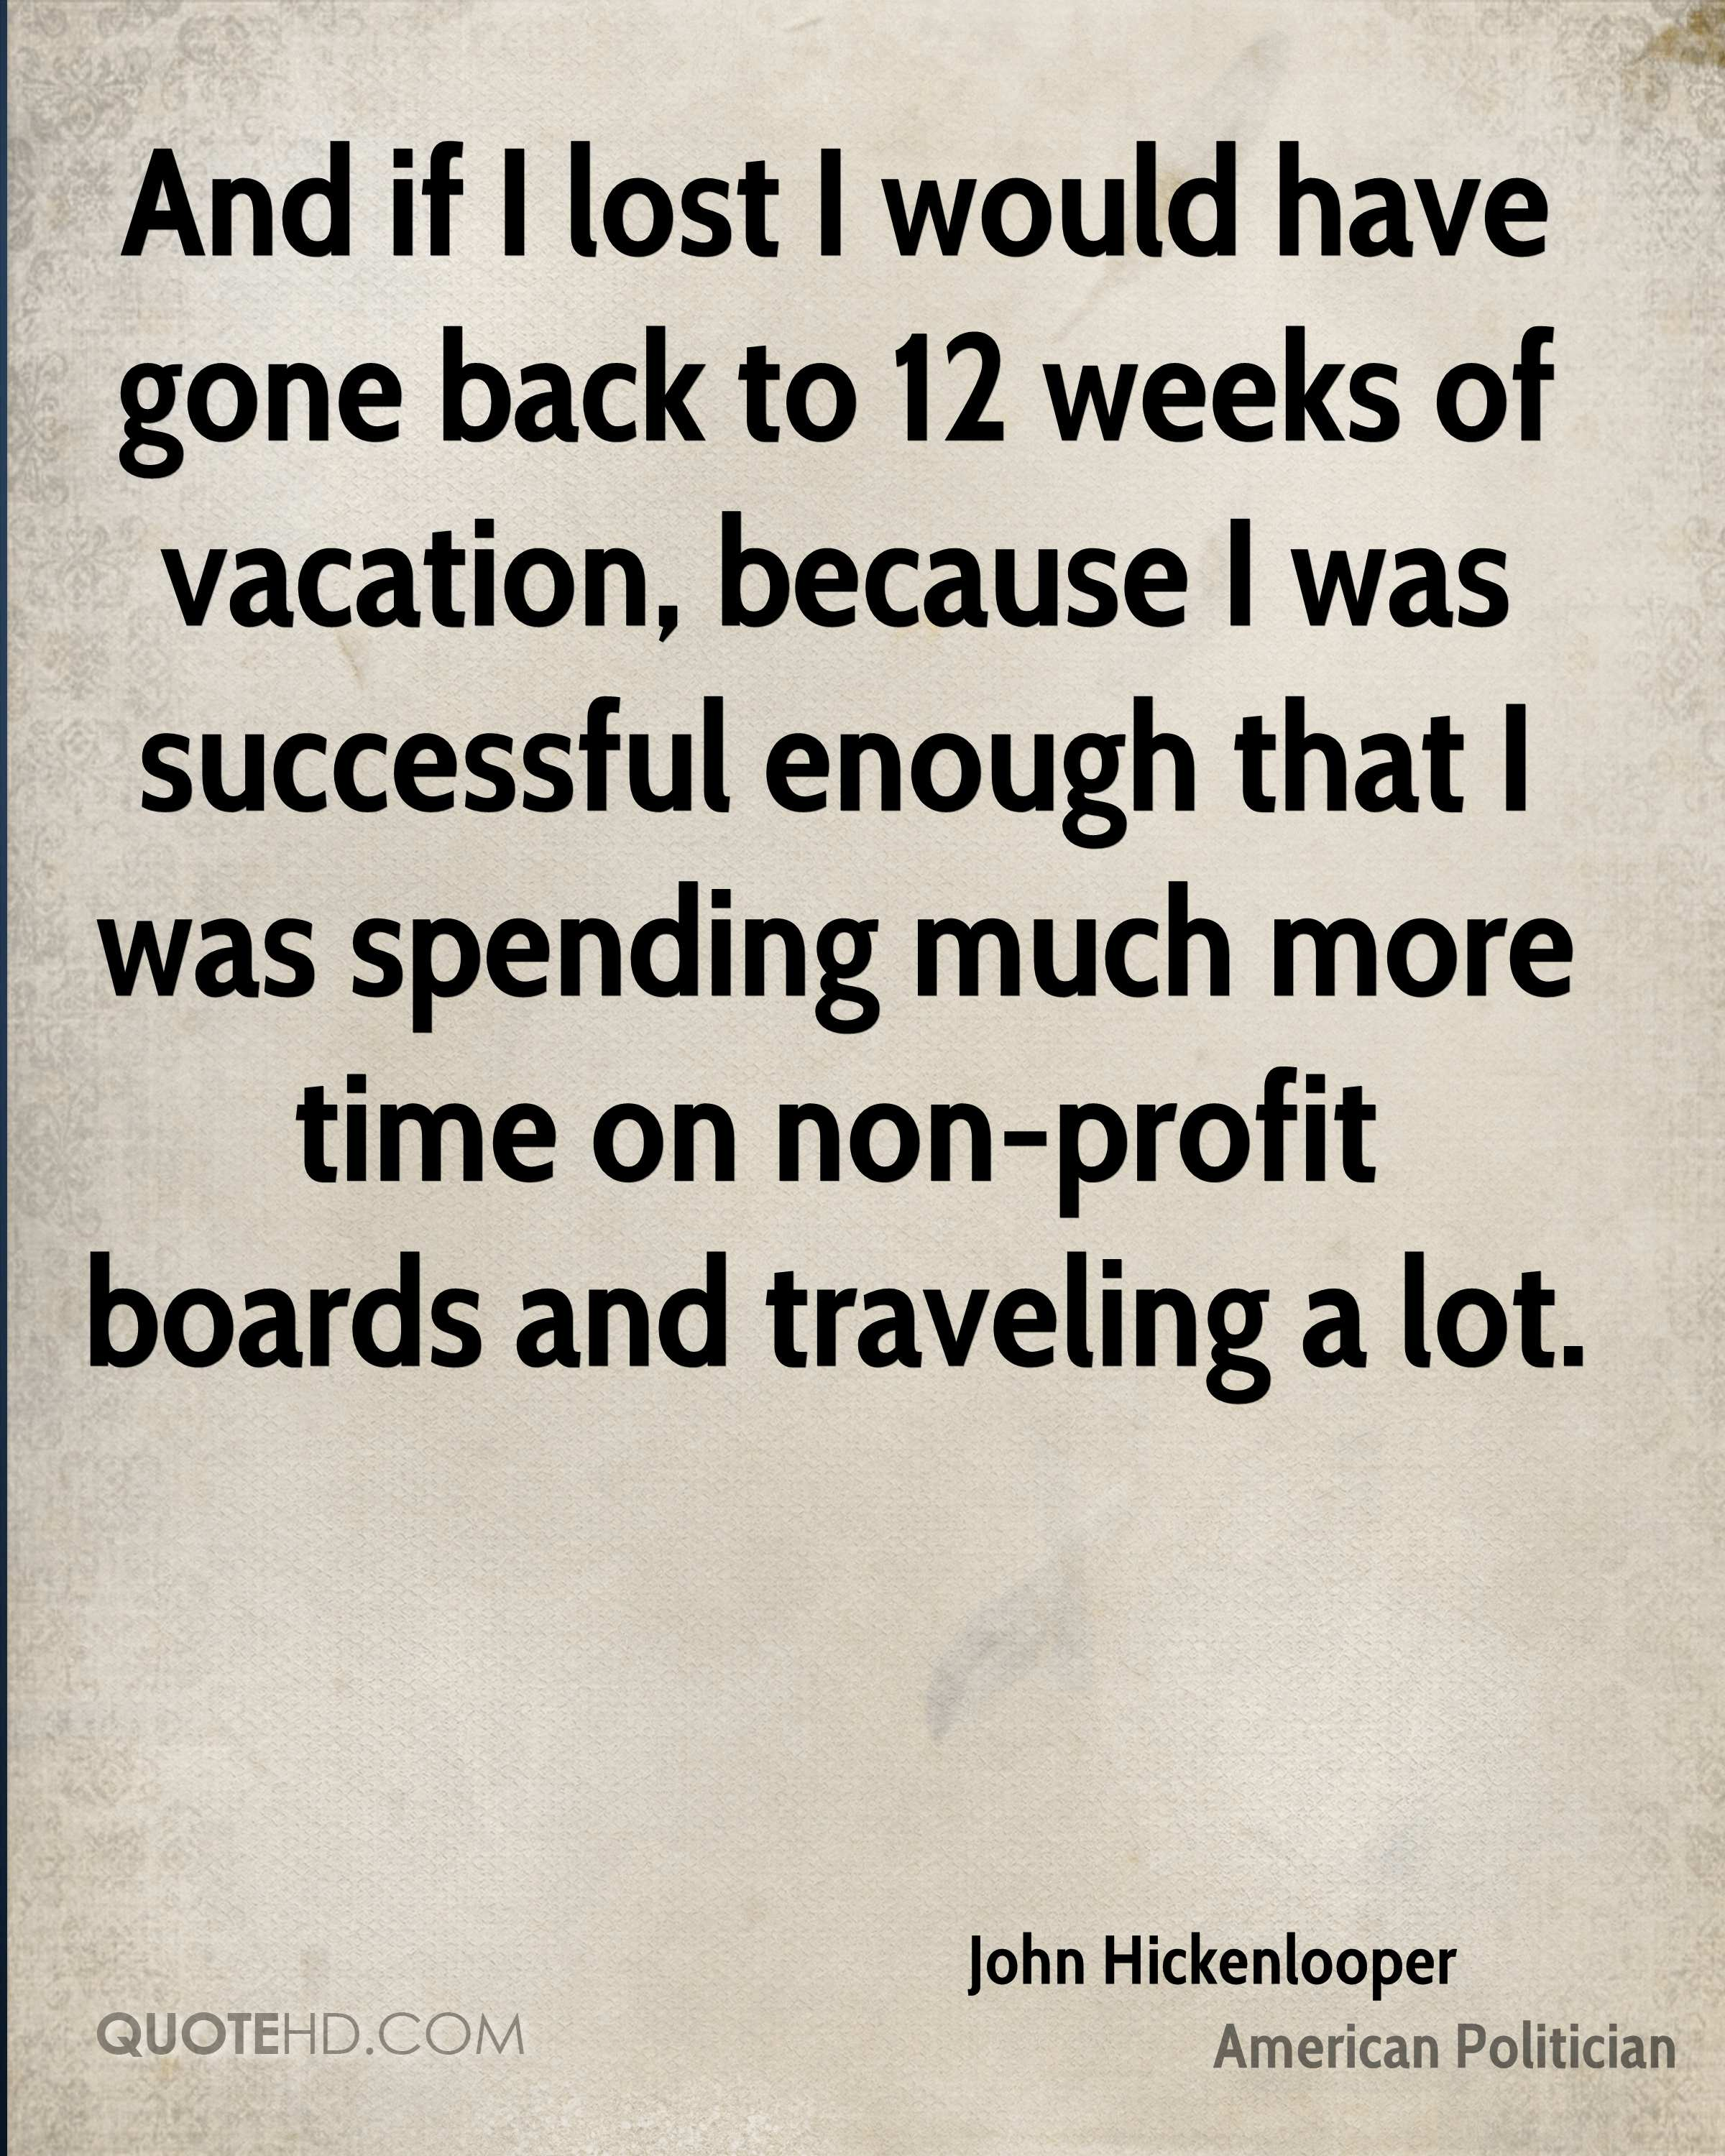 And if I lost I would have gone back to 12 weeks of vacation, because I was successful enough that I was spending much more time on non-profit boards and traveling a lot.